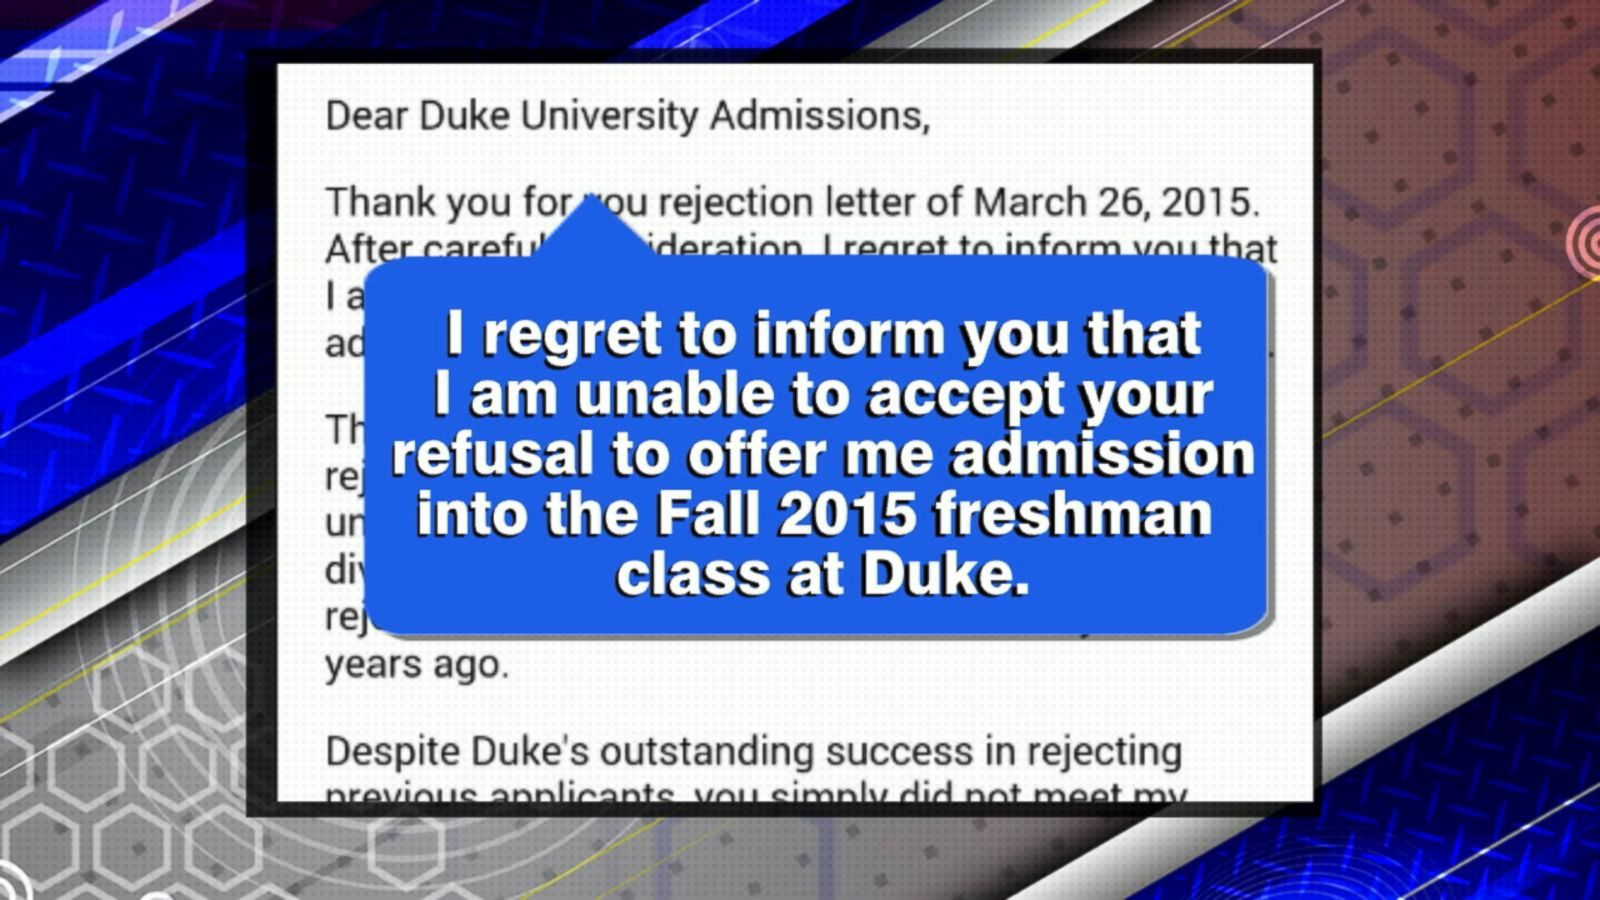 North Carolina Teen Writes Rejection Letter to Duke University's